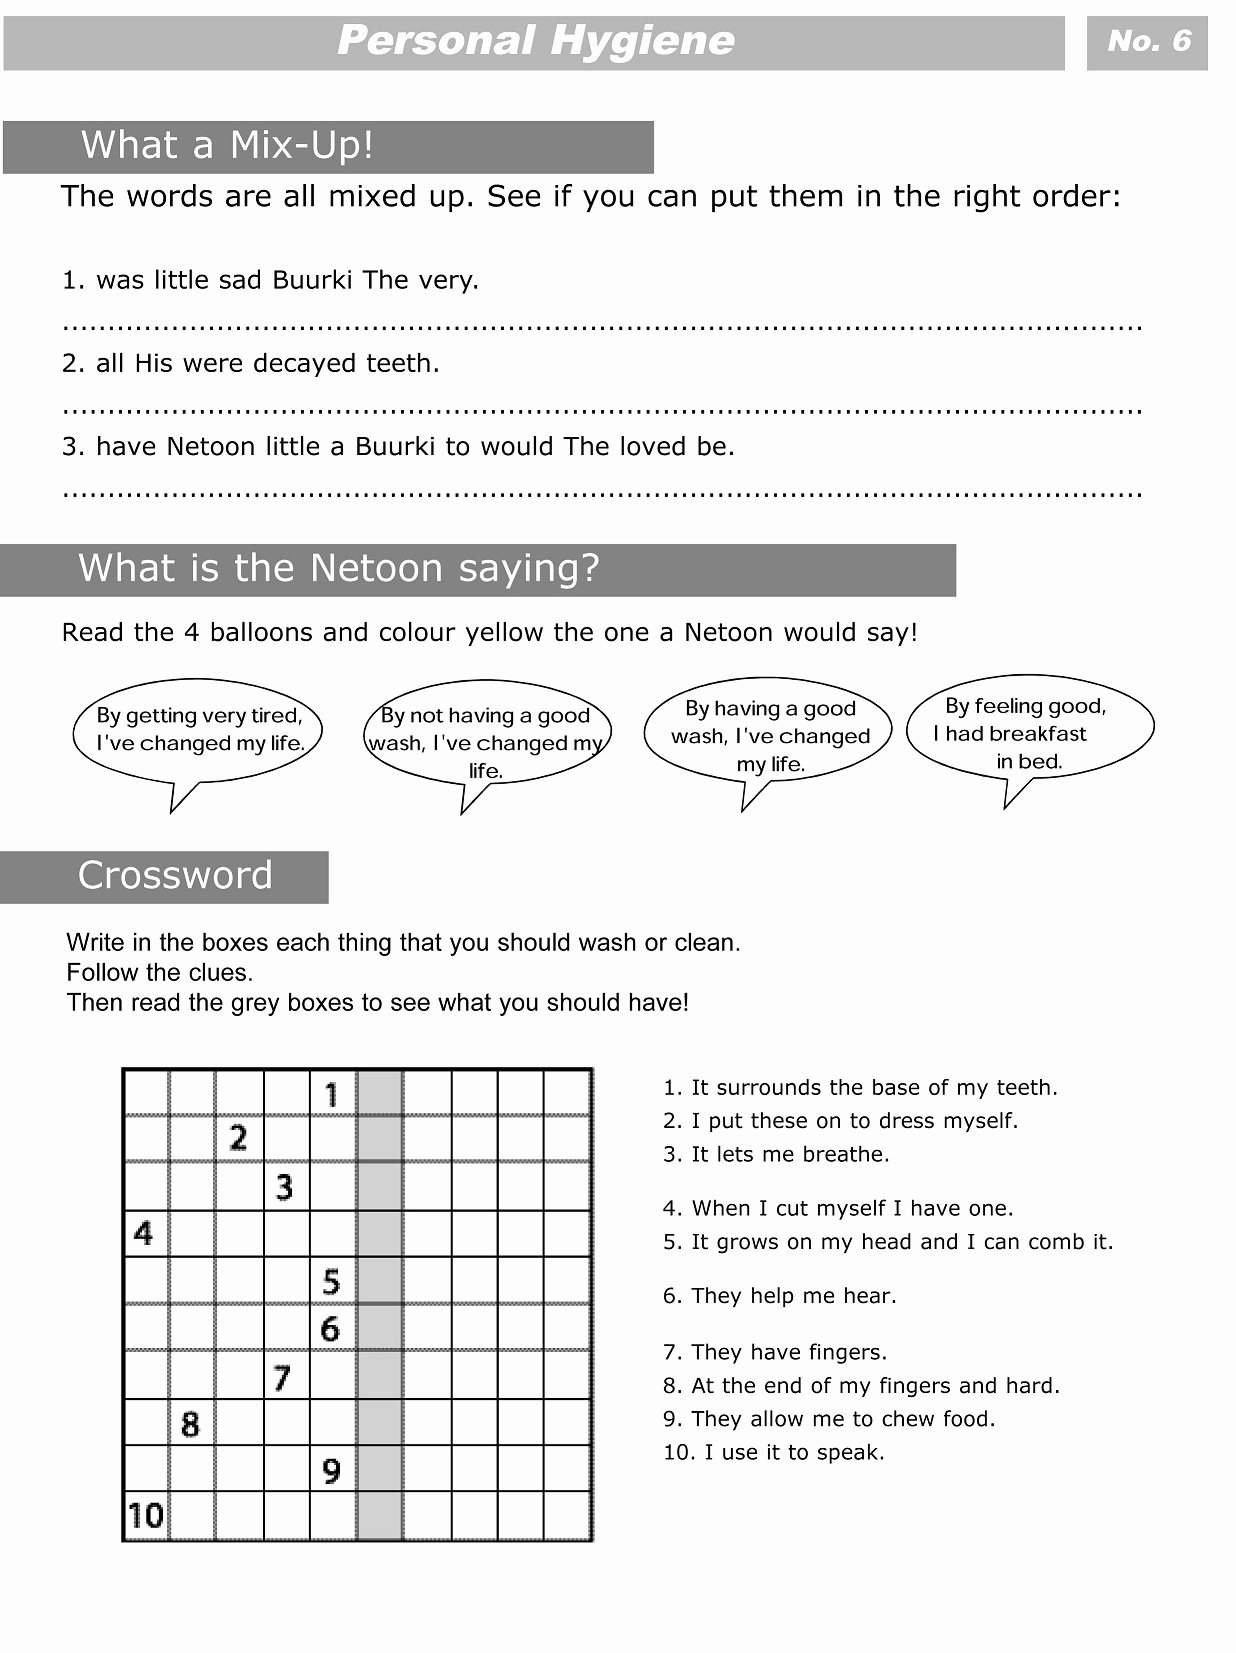 Healthy Relationships Worksheets Pdf – Cgcprojects – Resume Or Middle School Health Worksheets Pdf